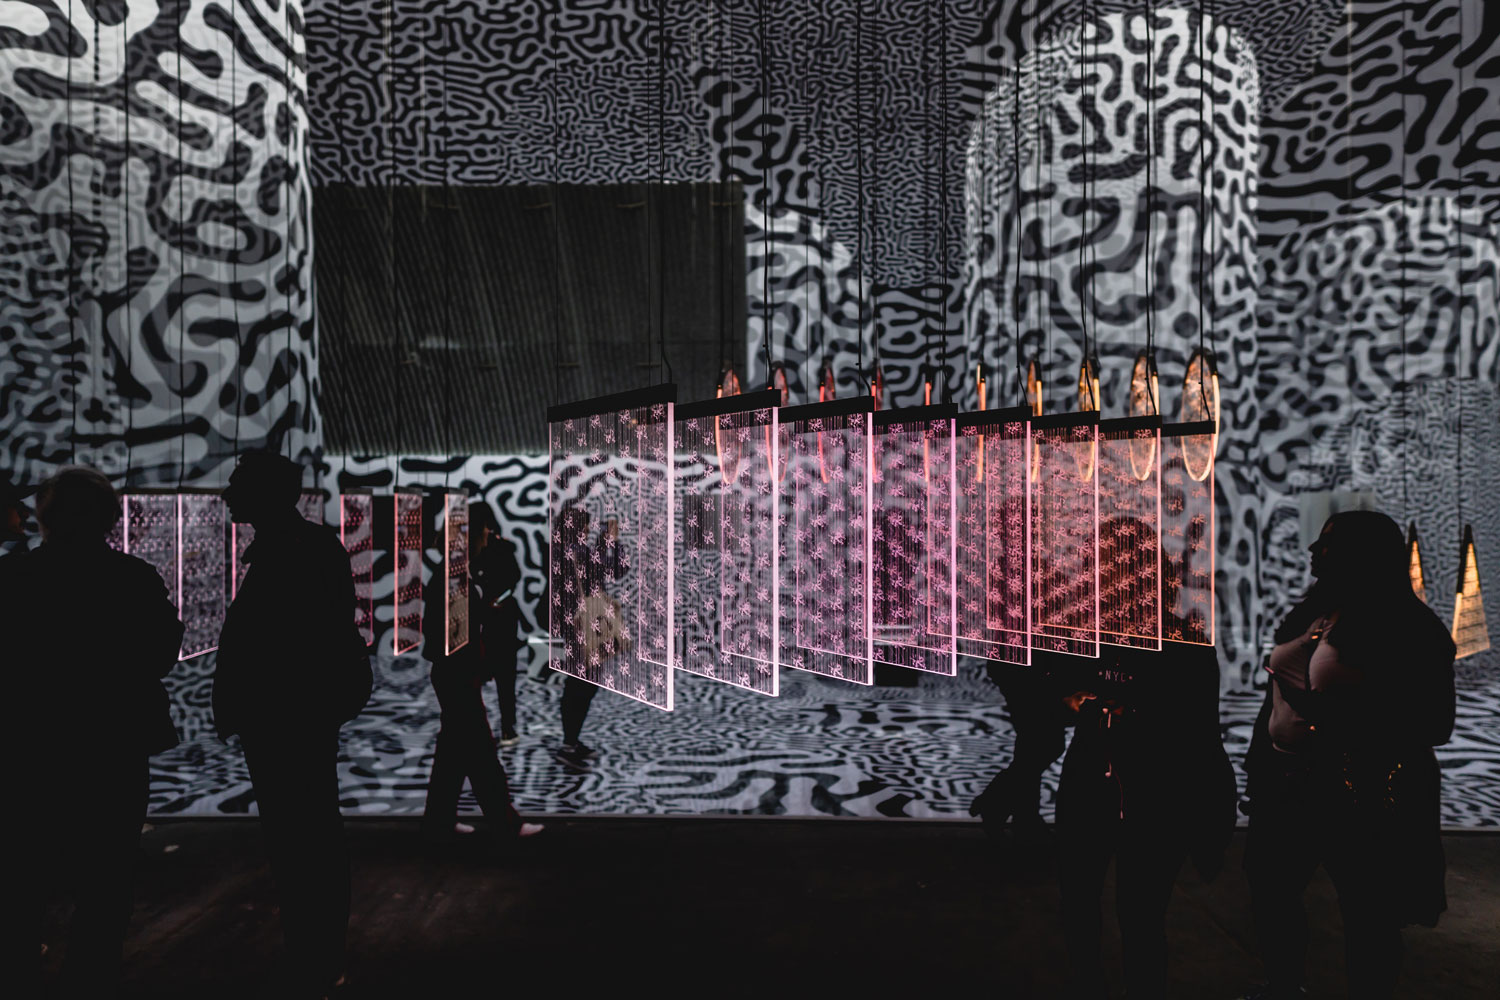 Best installations seen during milan design week 2019 - DAI NIPPON PRINTING